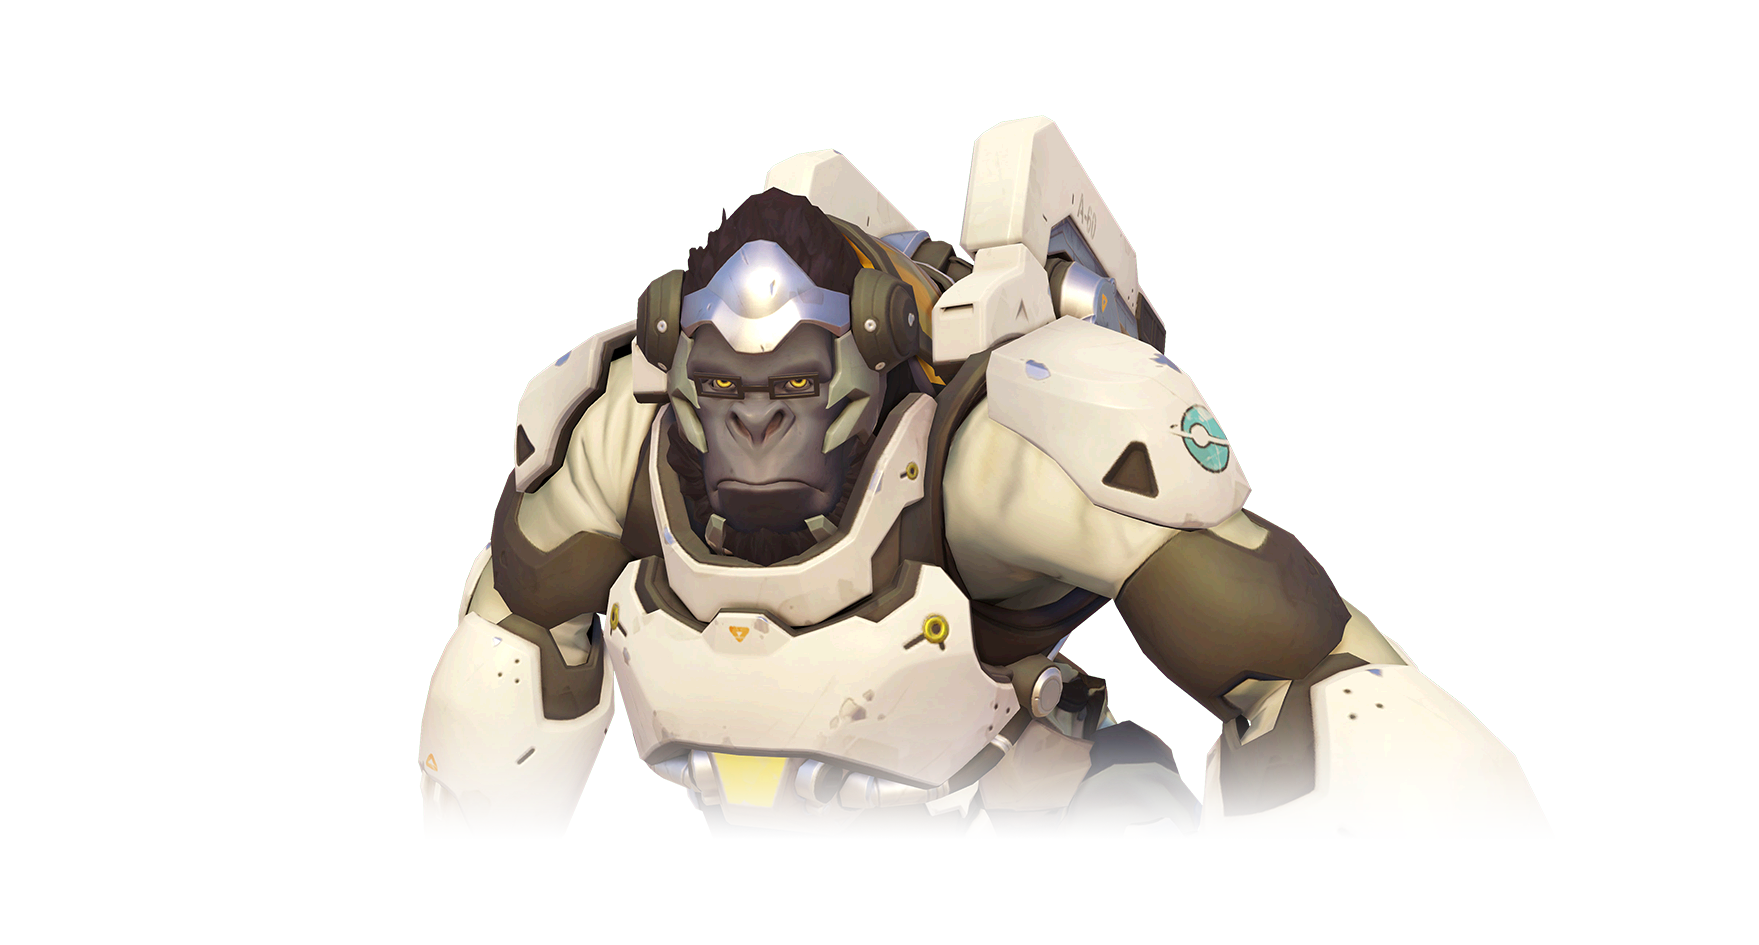 Winston face png. Overwatch characters transparent background